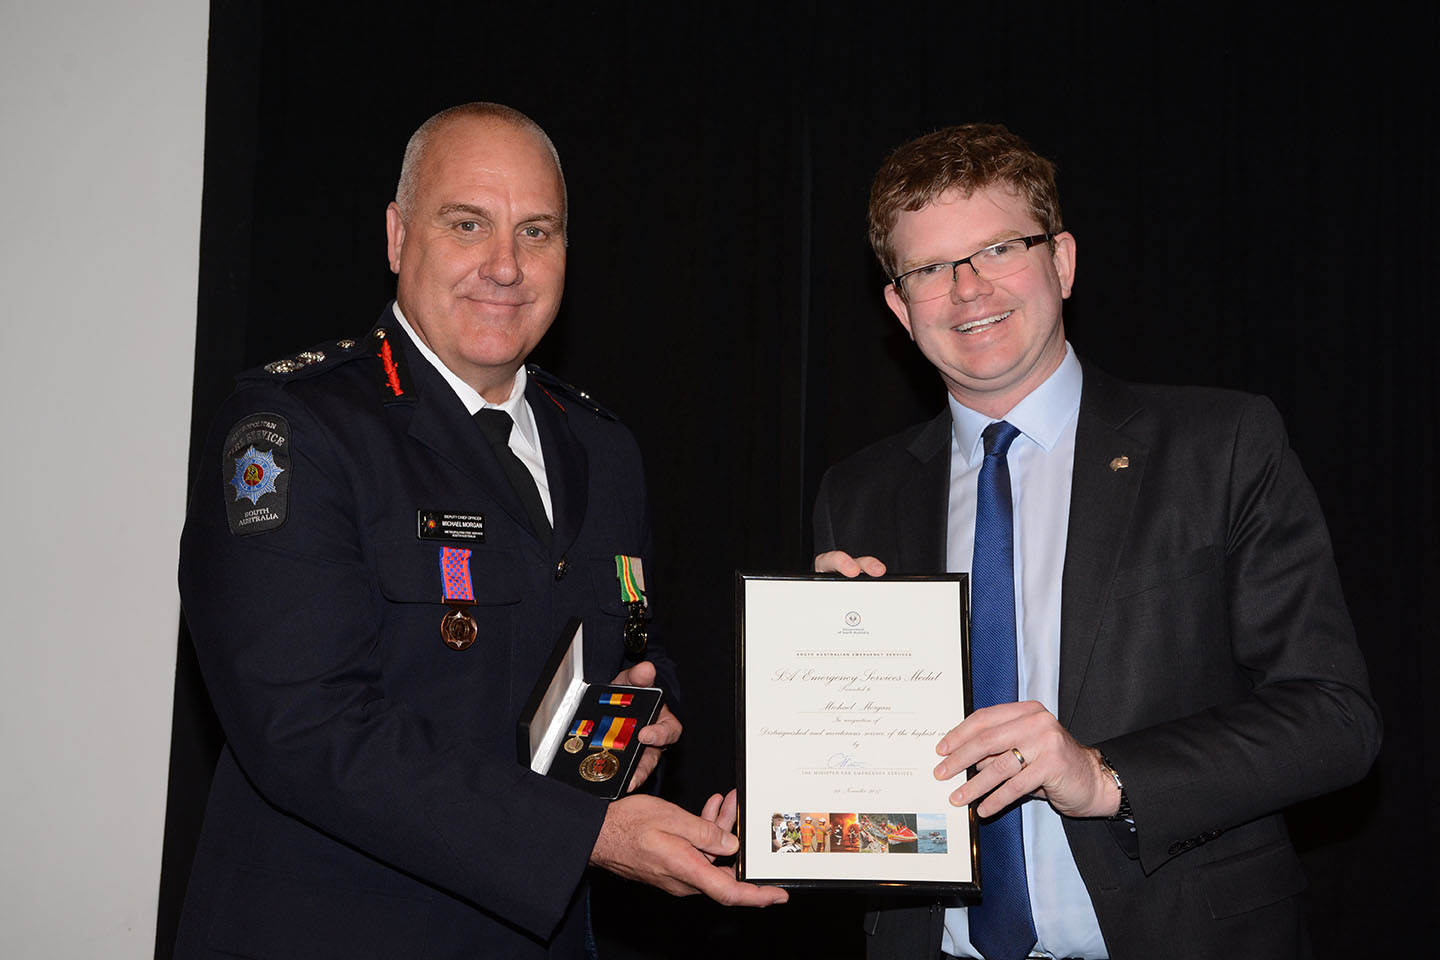 Emergency Services Medal and Commendations - M Morgan